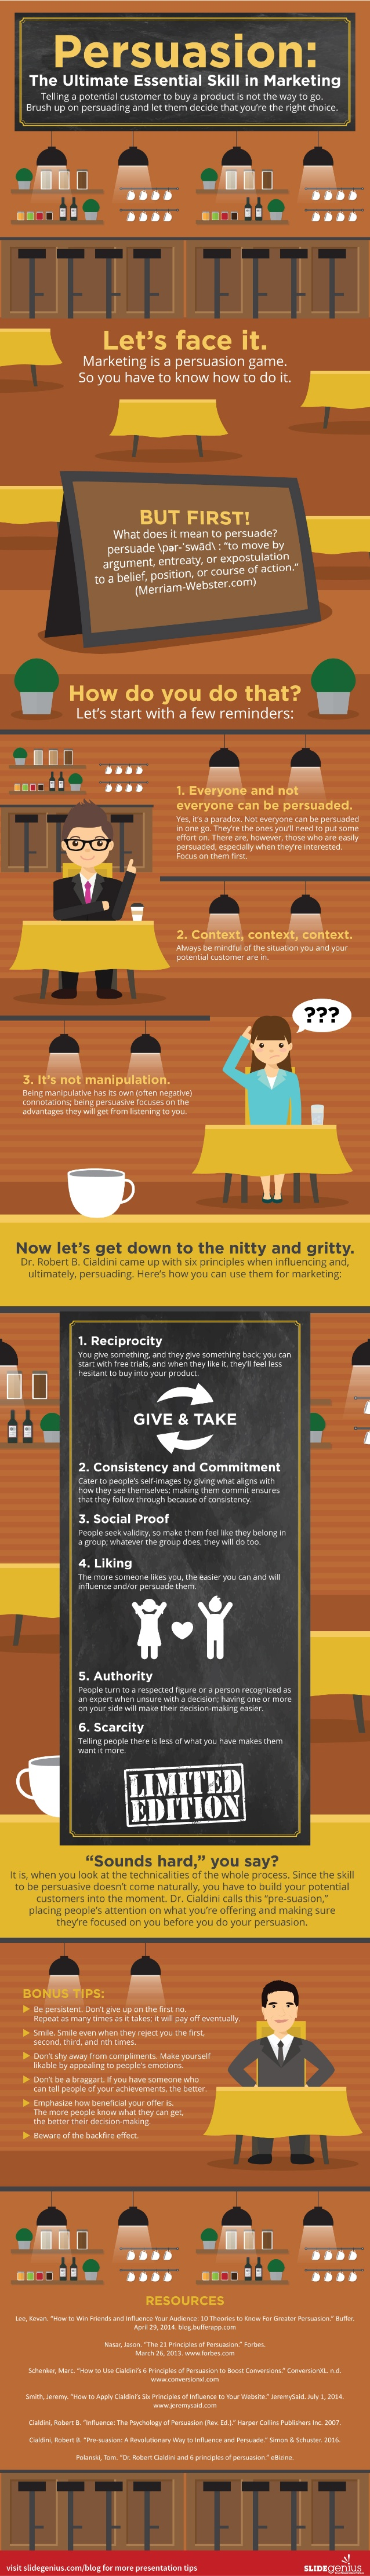 How Can You Rock At The Marketing Game? - Infographic